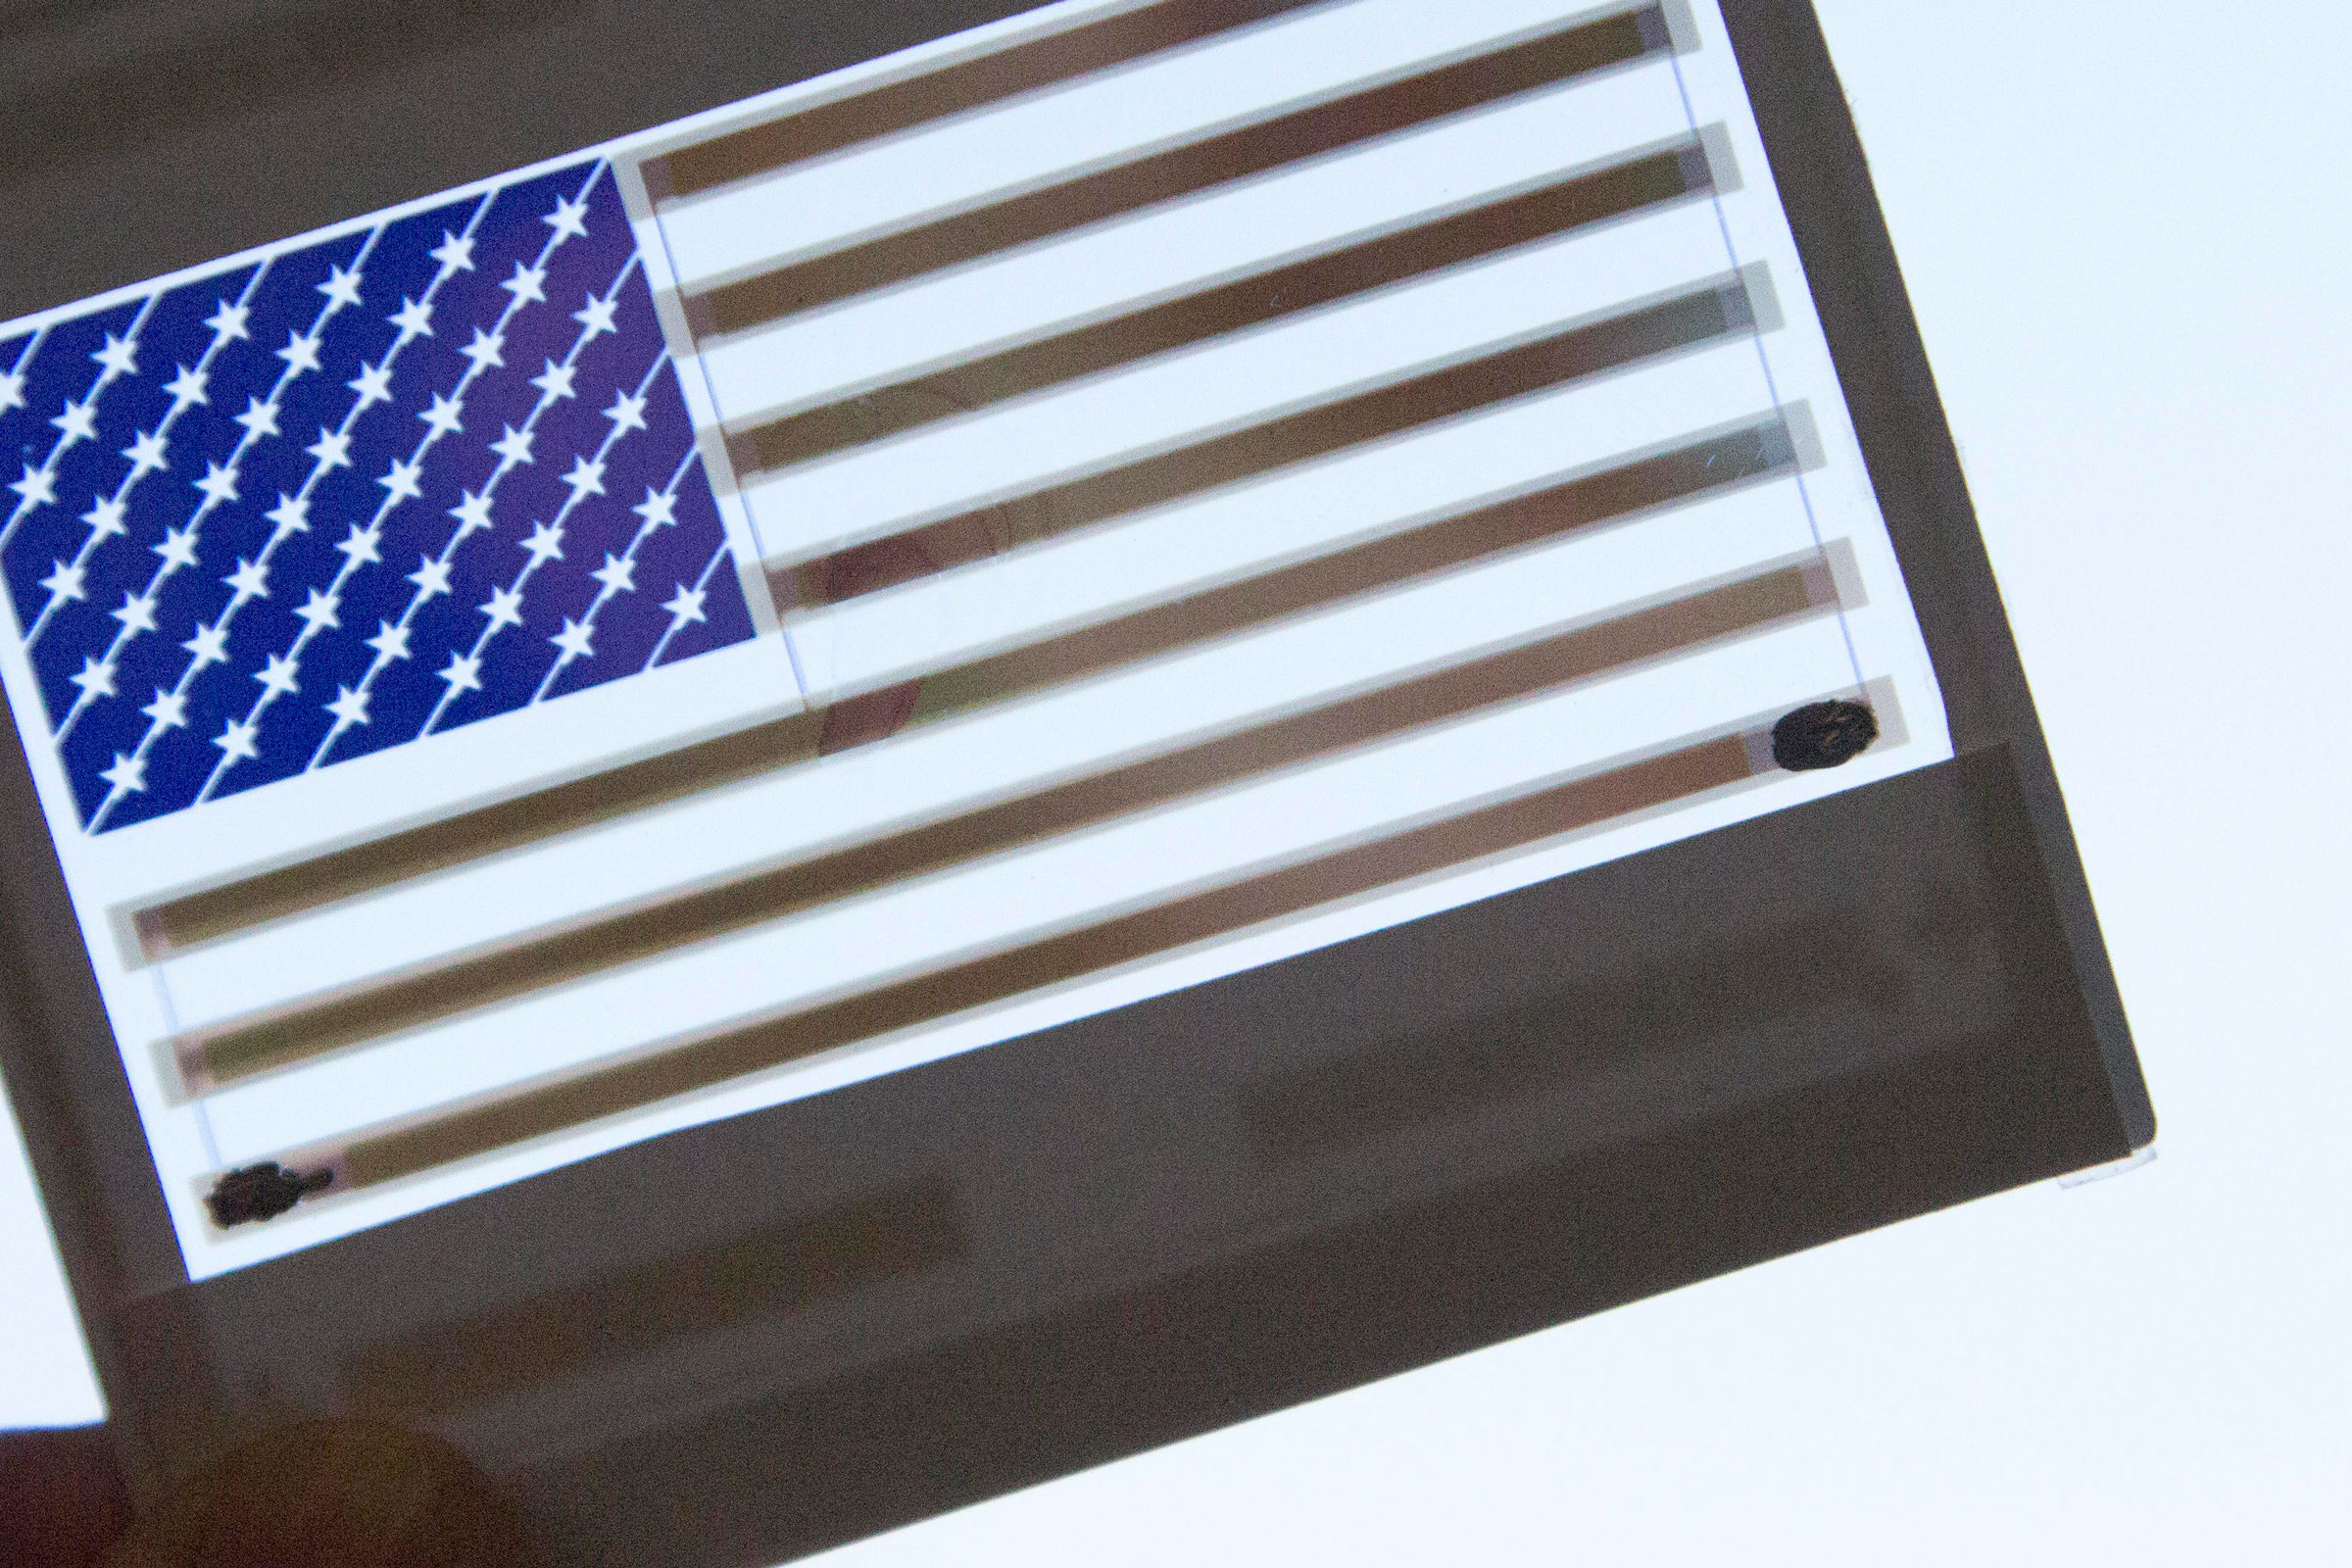 Colored solar panel with a flag image on it.